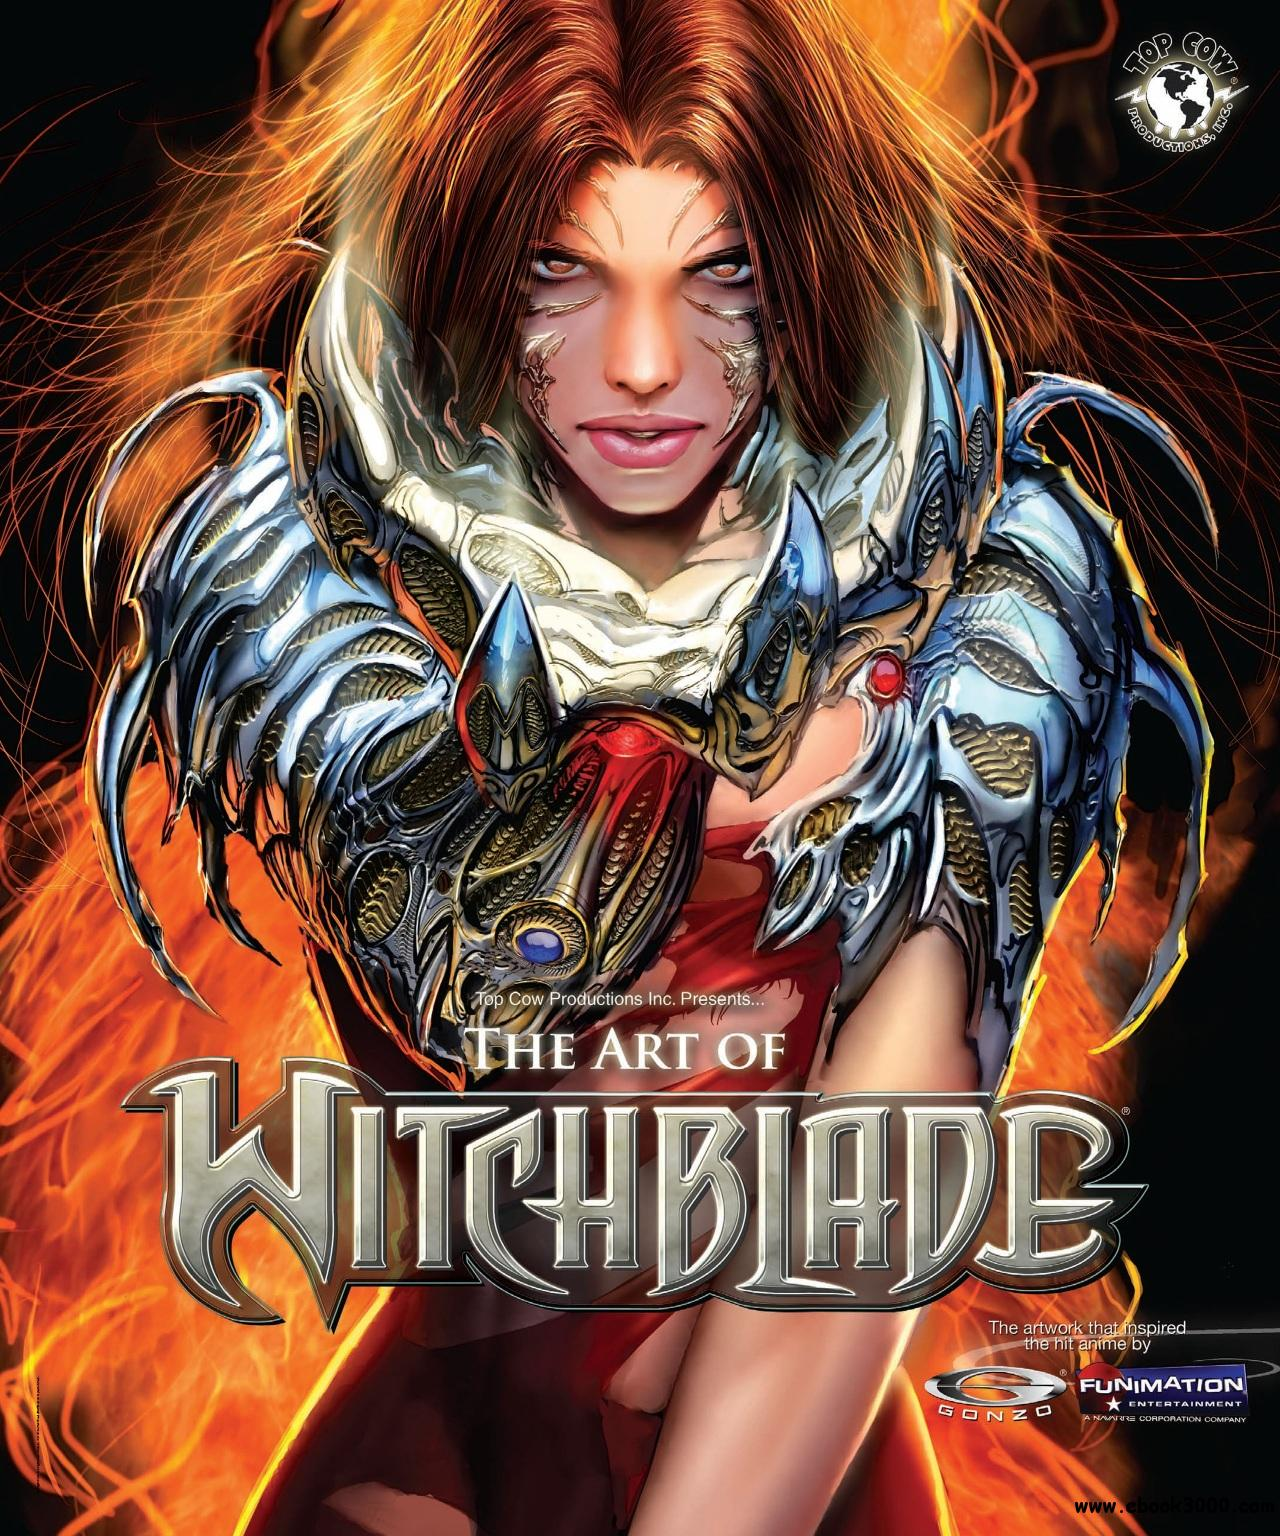 The Art of Witchblade (2008) free download